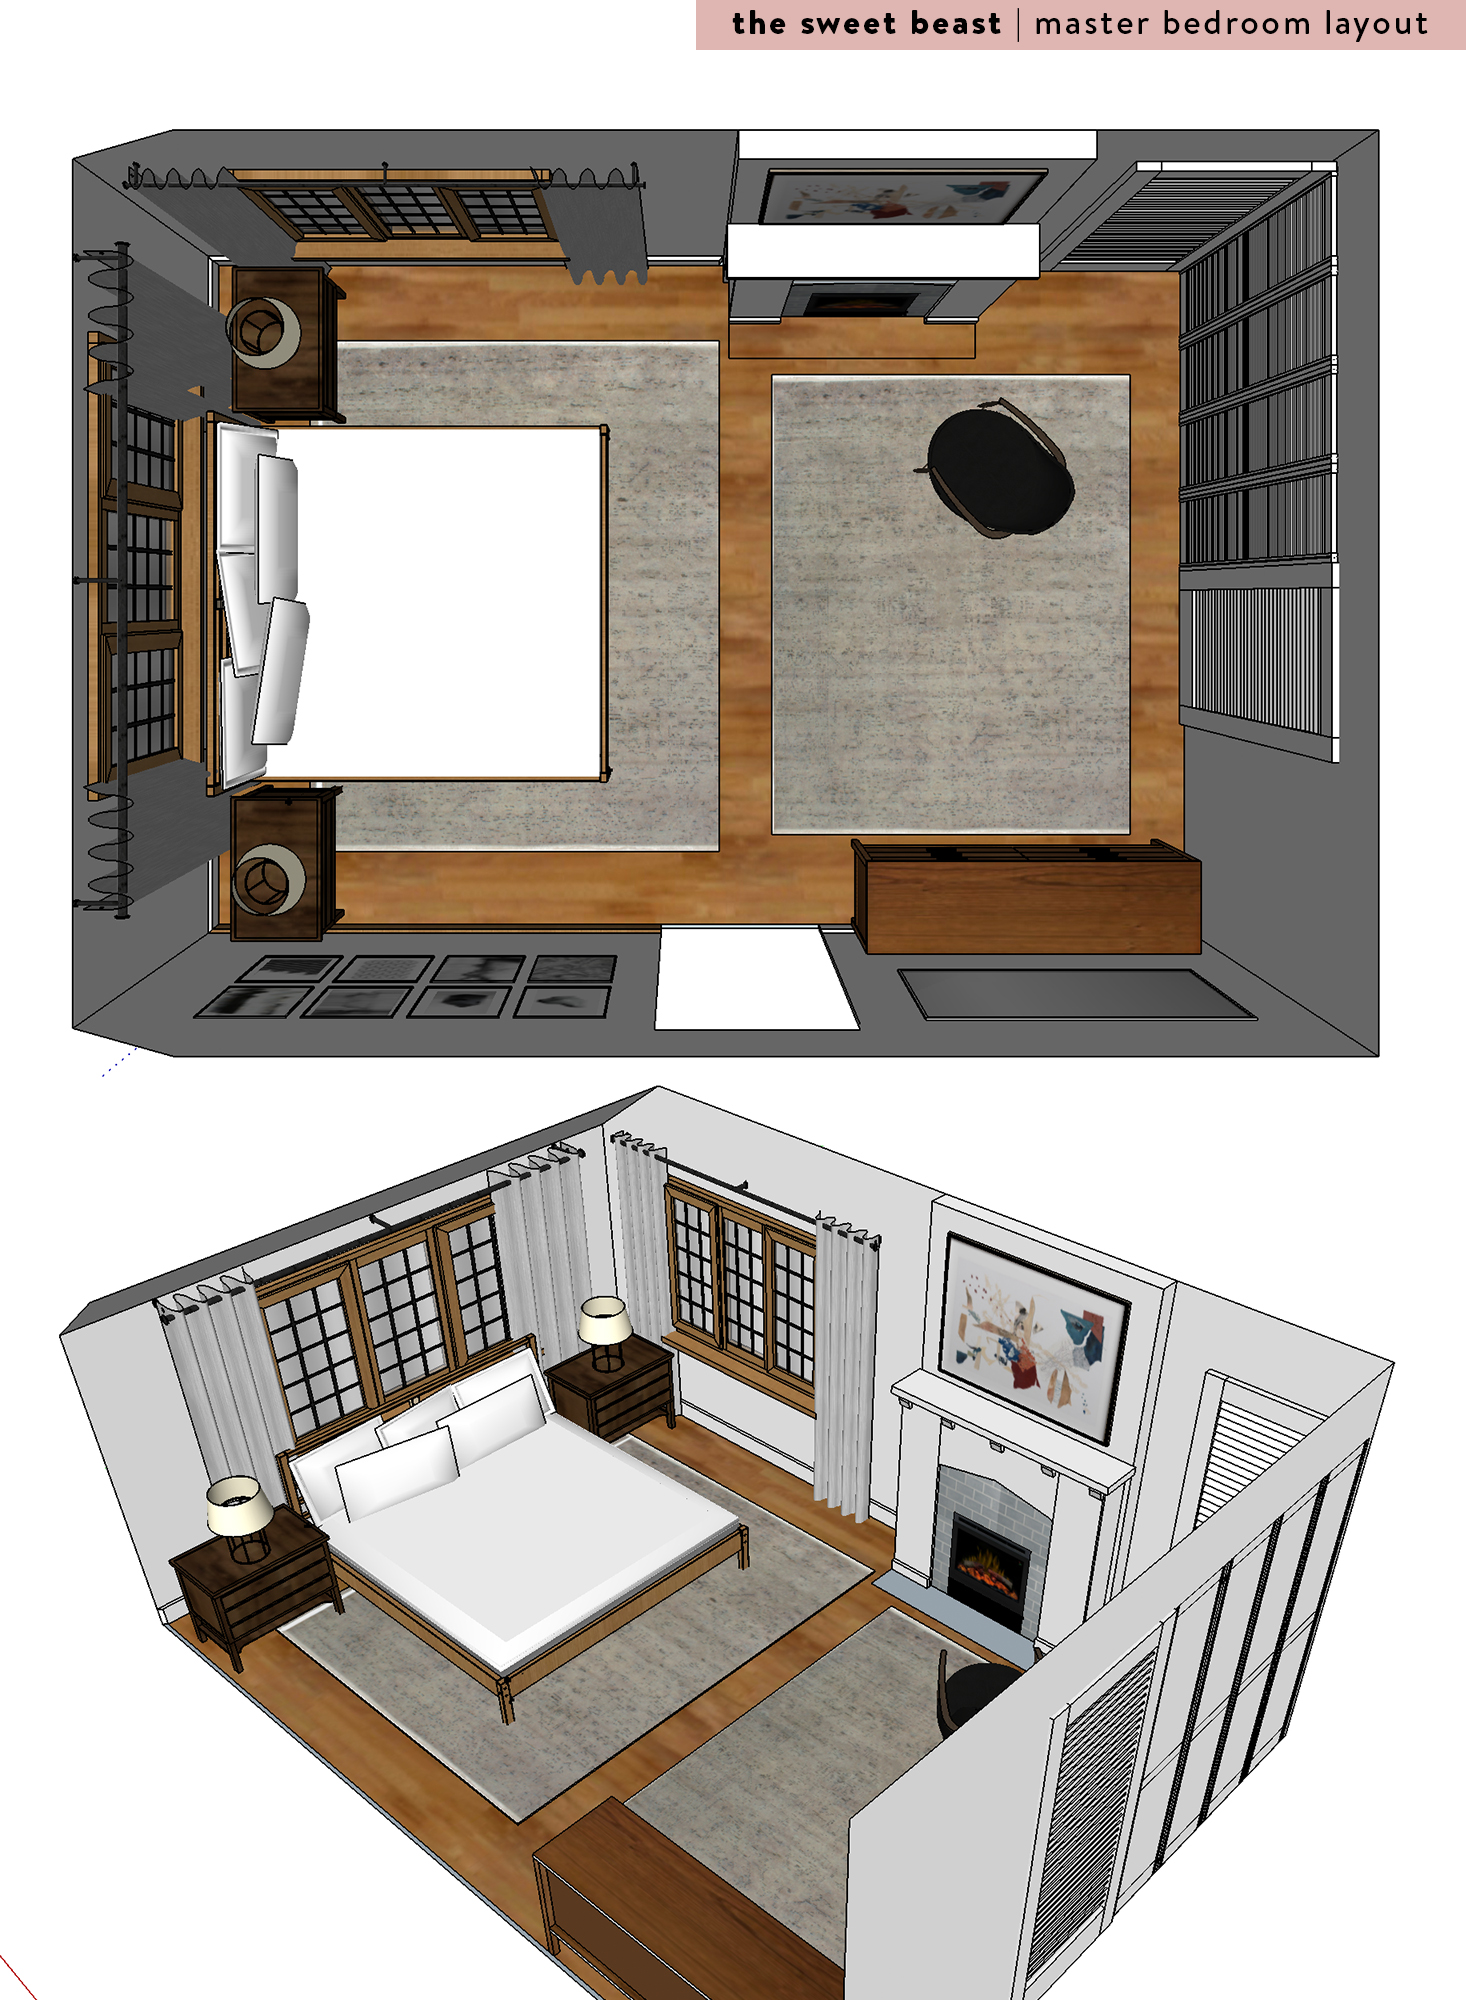 master bedroom layout skechup